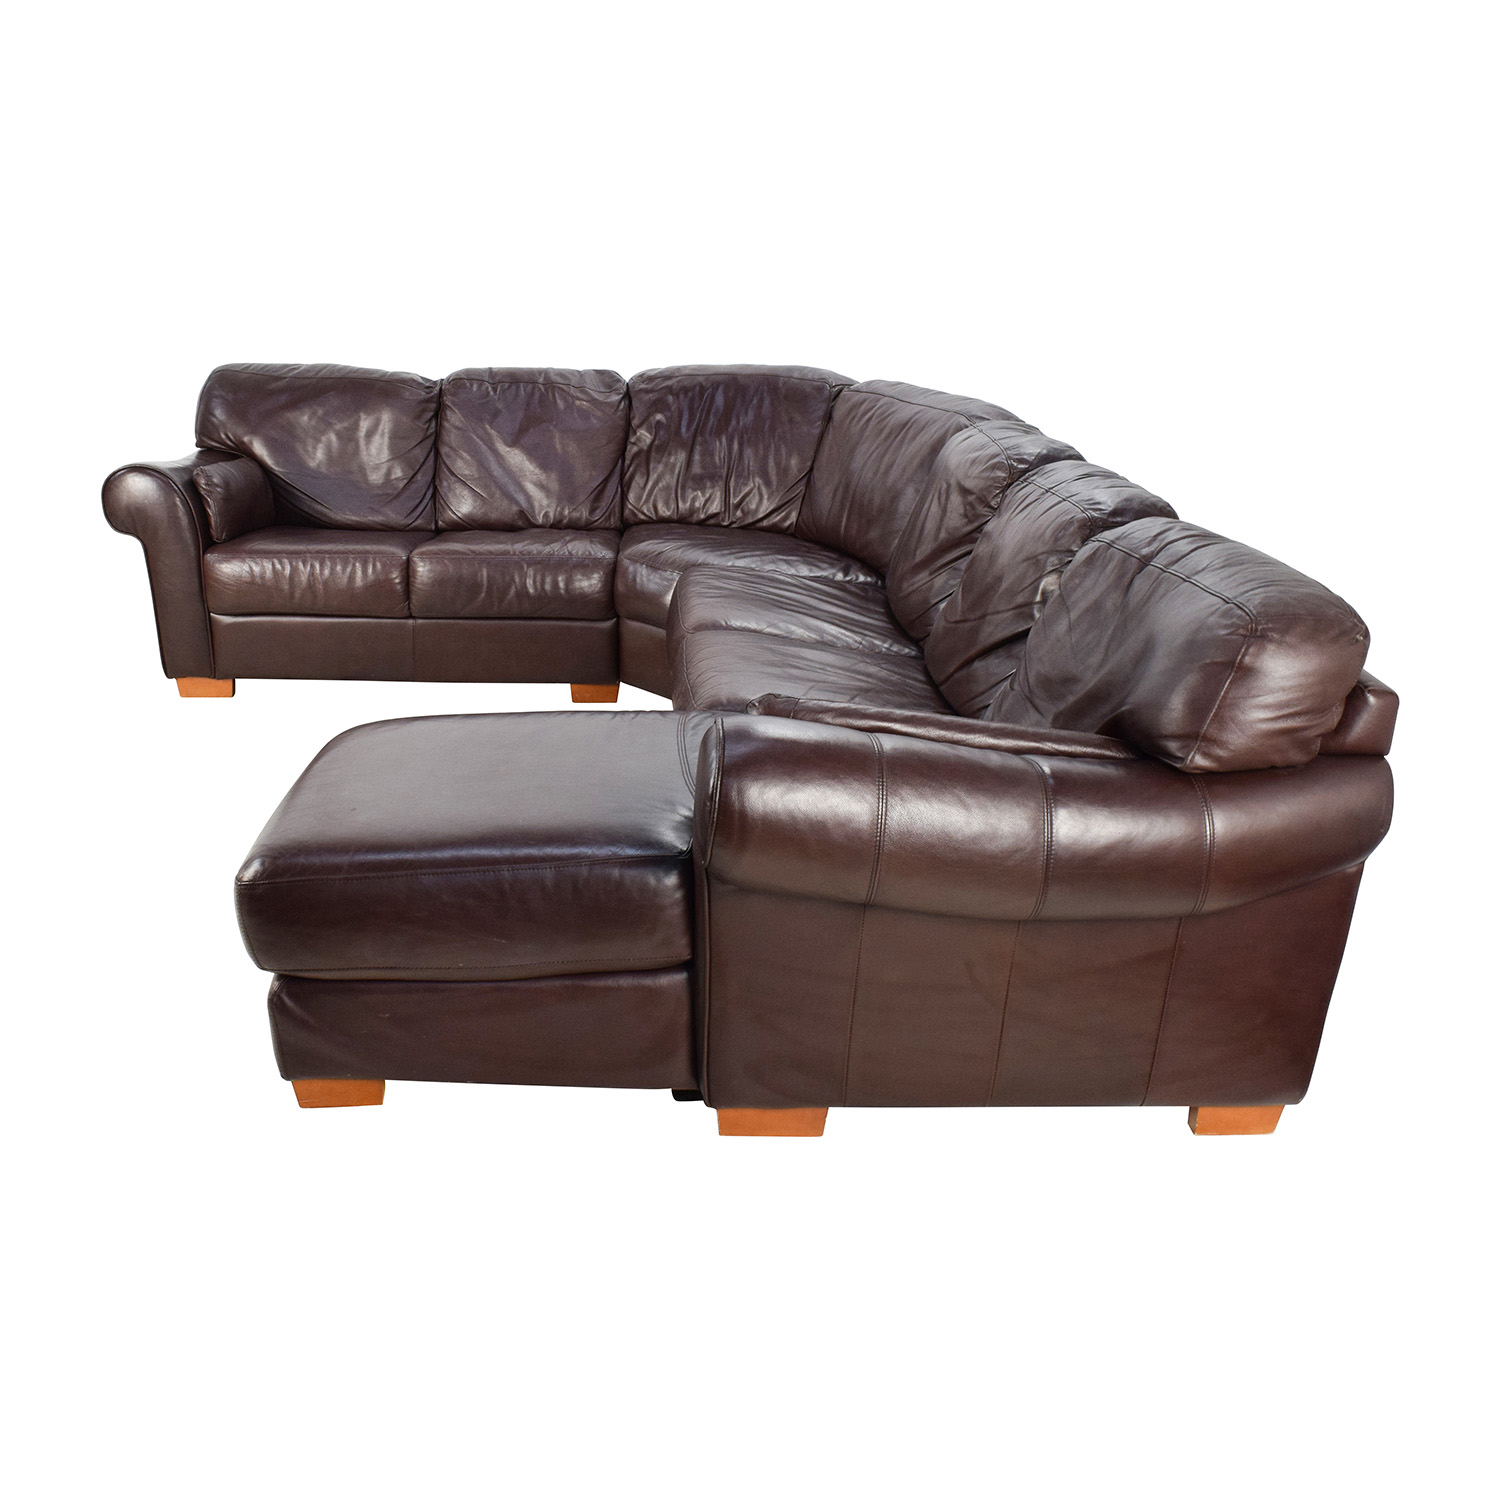 4 piece recliner sectional sofa storage sofas australia 63 off raymour and flanigan